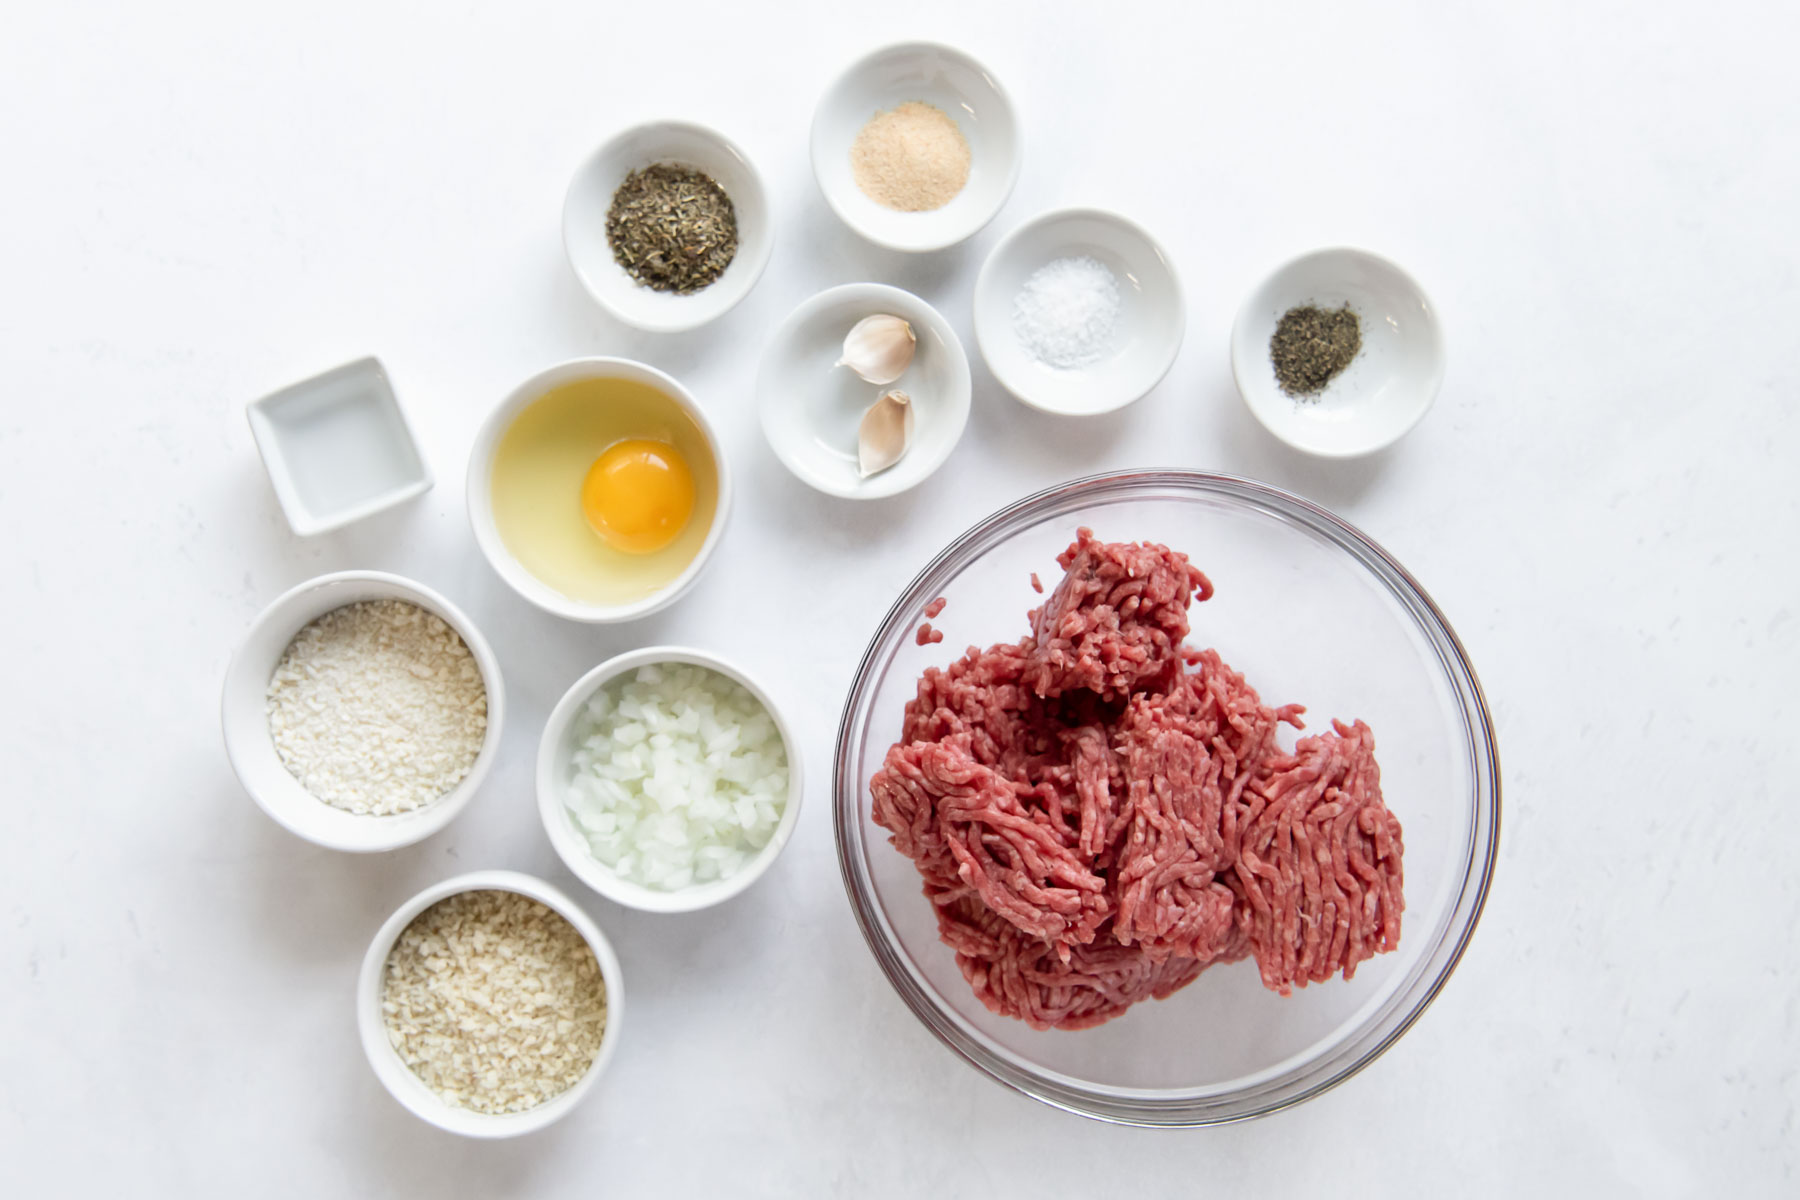 ingredients for meatball recipe